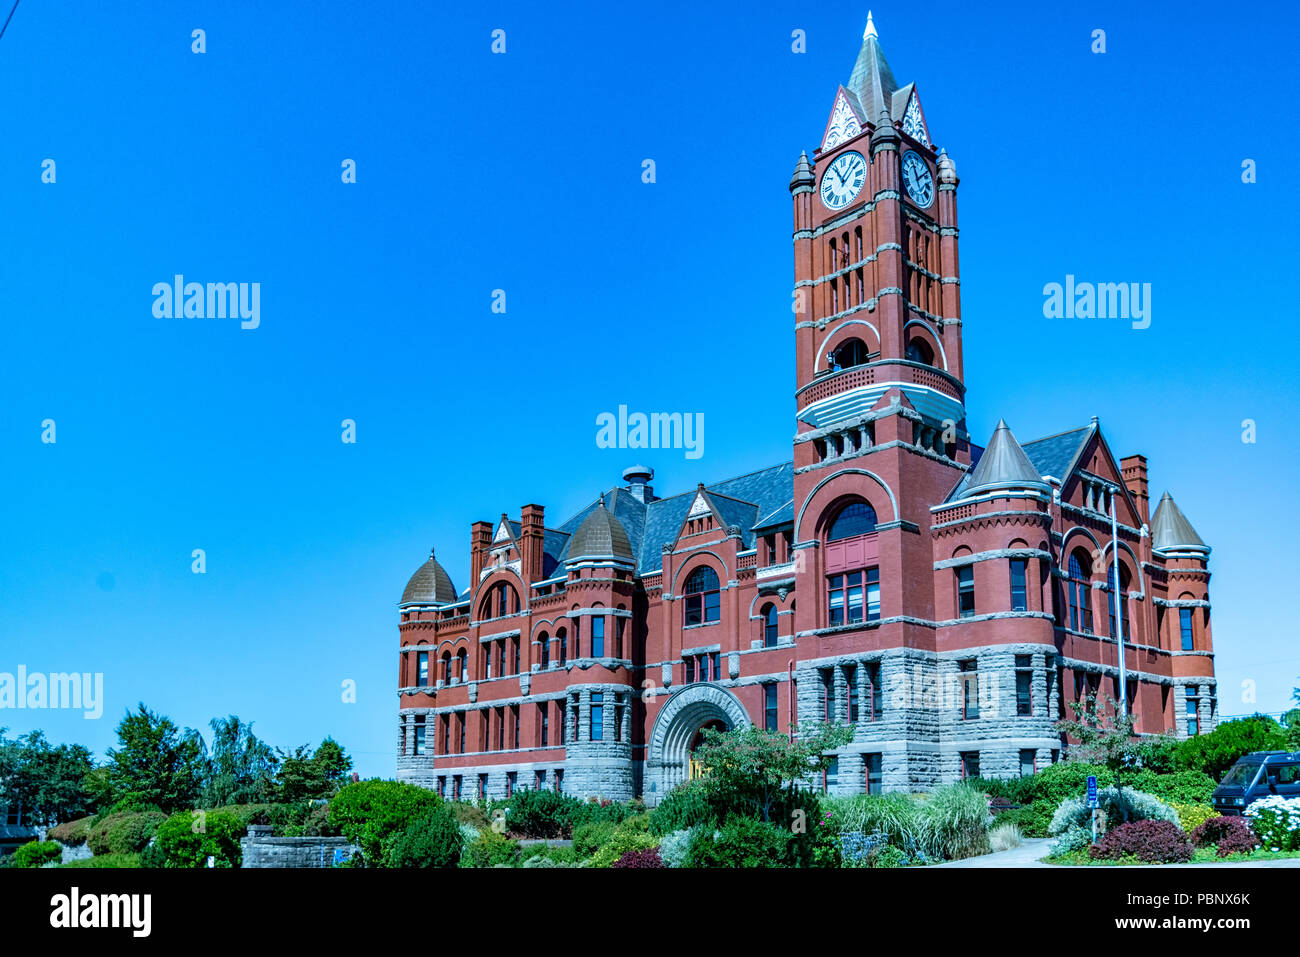 Jefferson County Courthouse 1. Built in red brick Romanesque Revival style in 1892 by Architect W. A. Ritchie. Port Townsend, Washington, USA - Stock Image